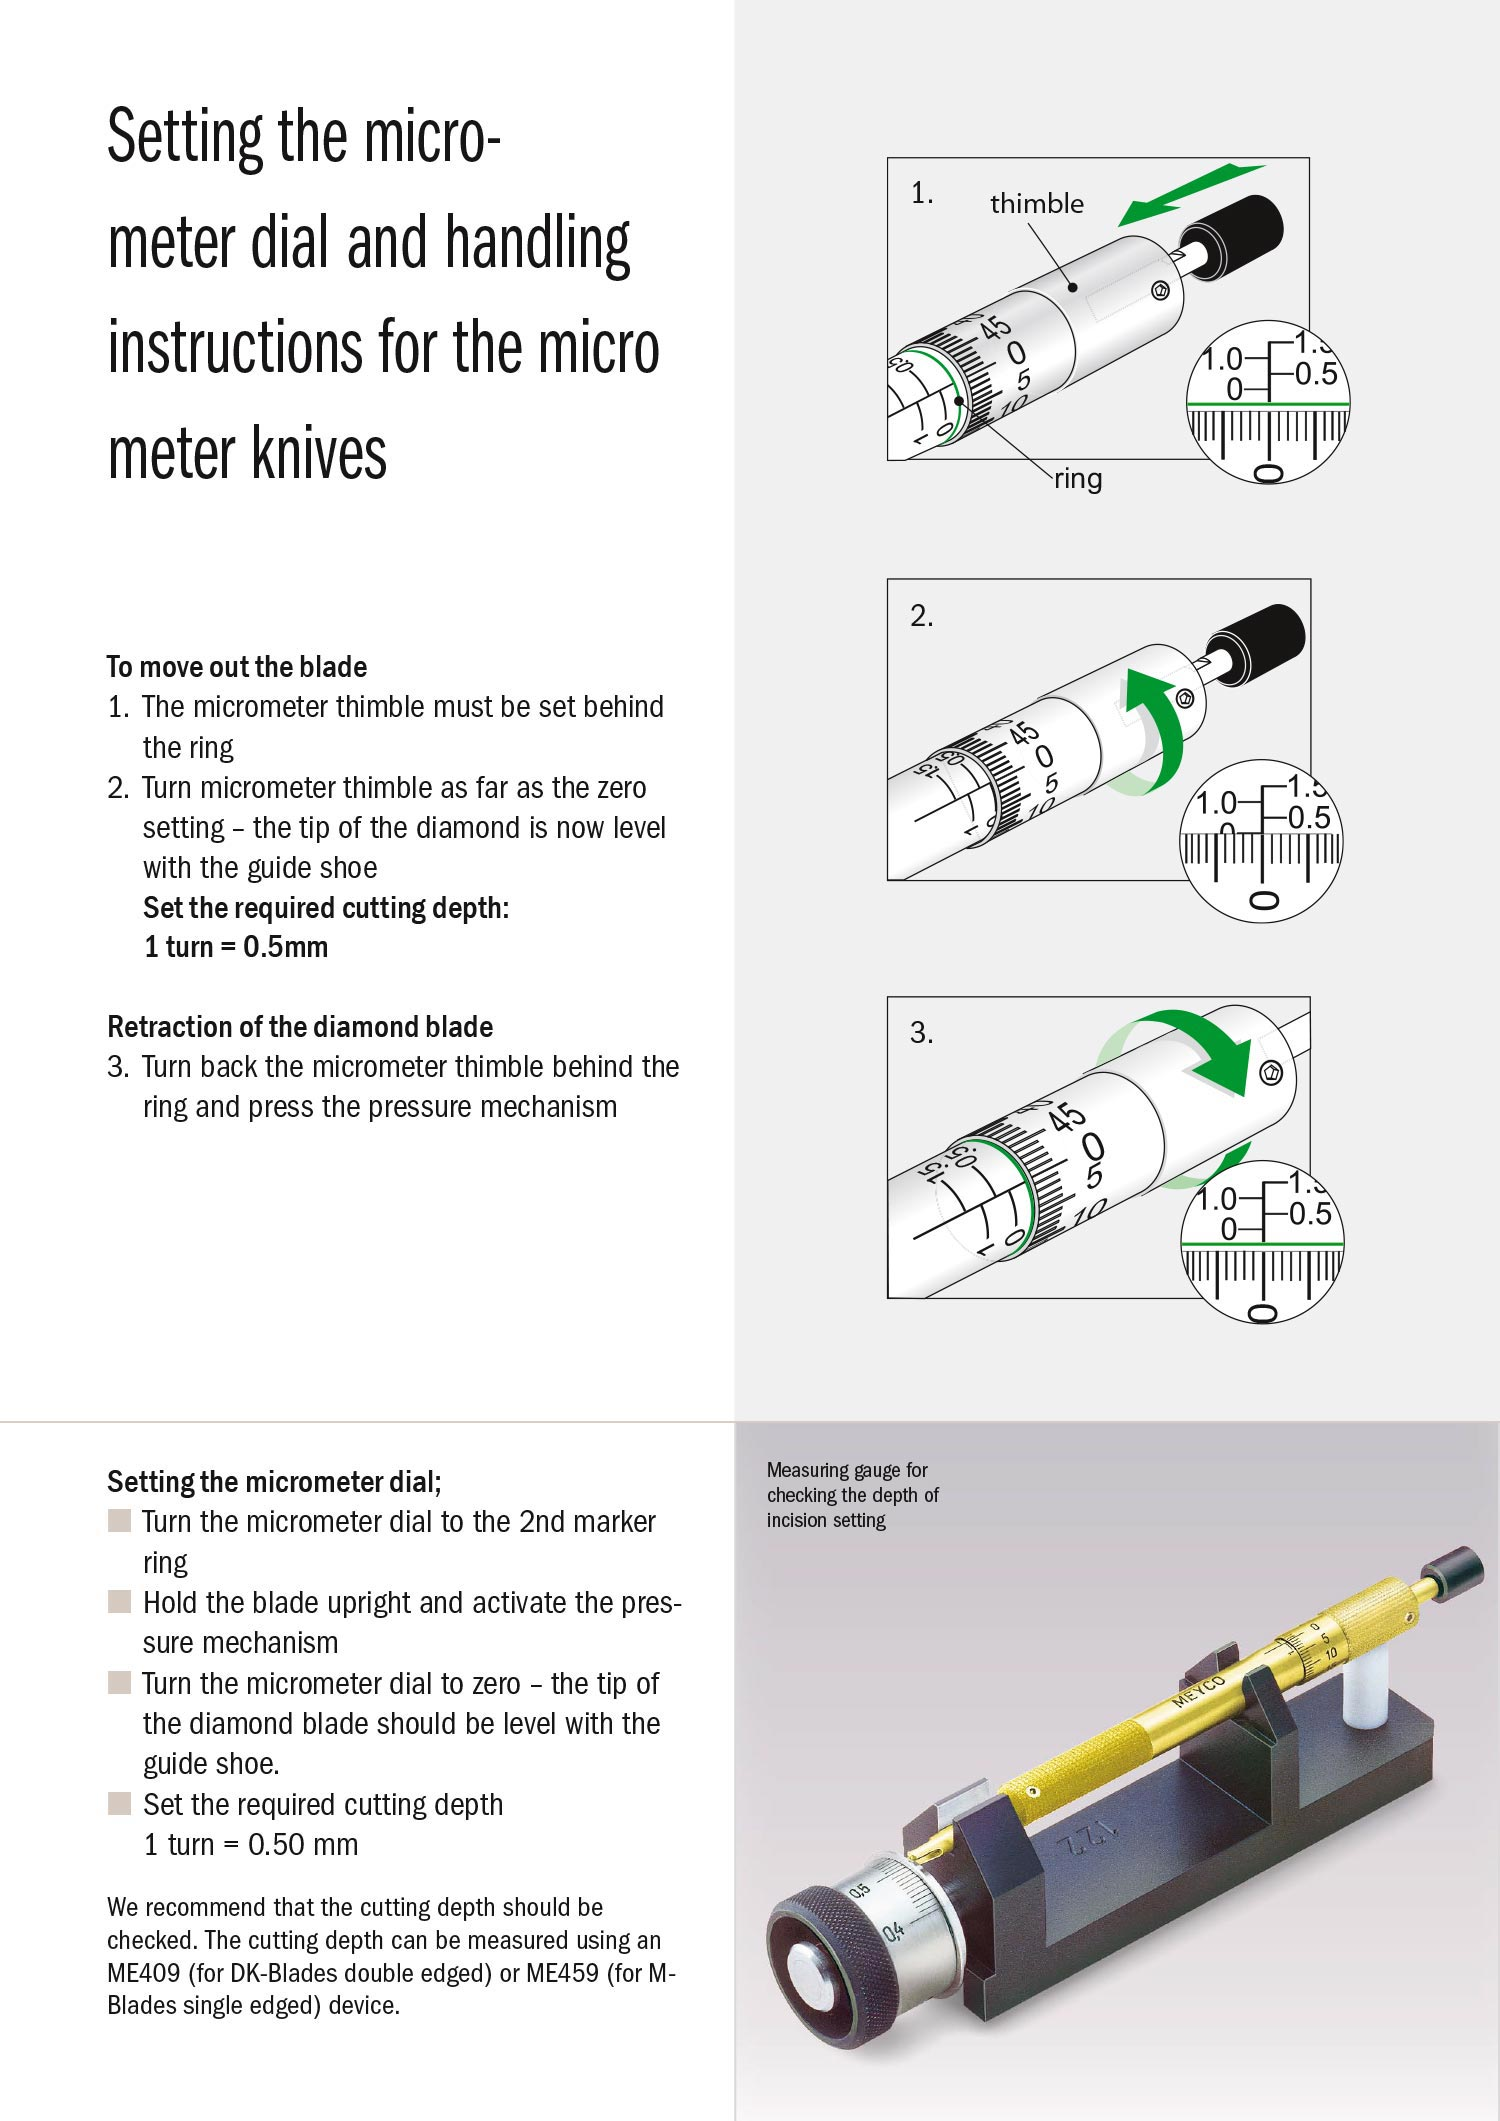 Setting the micrometer dial and handling instructions for the micrometer knives